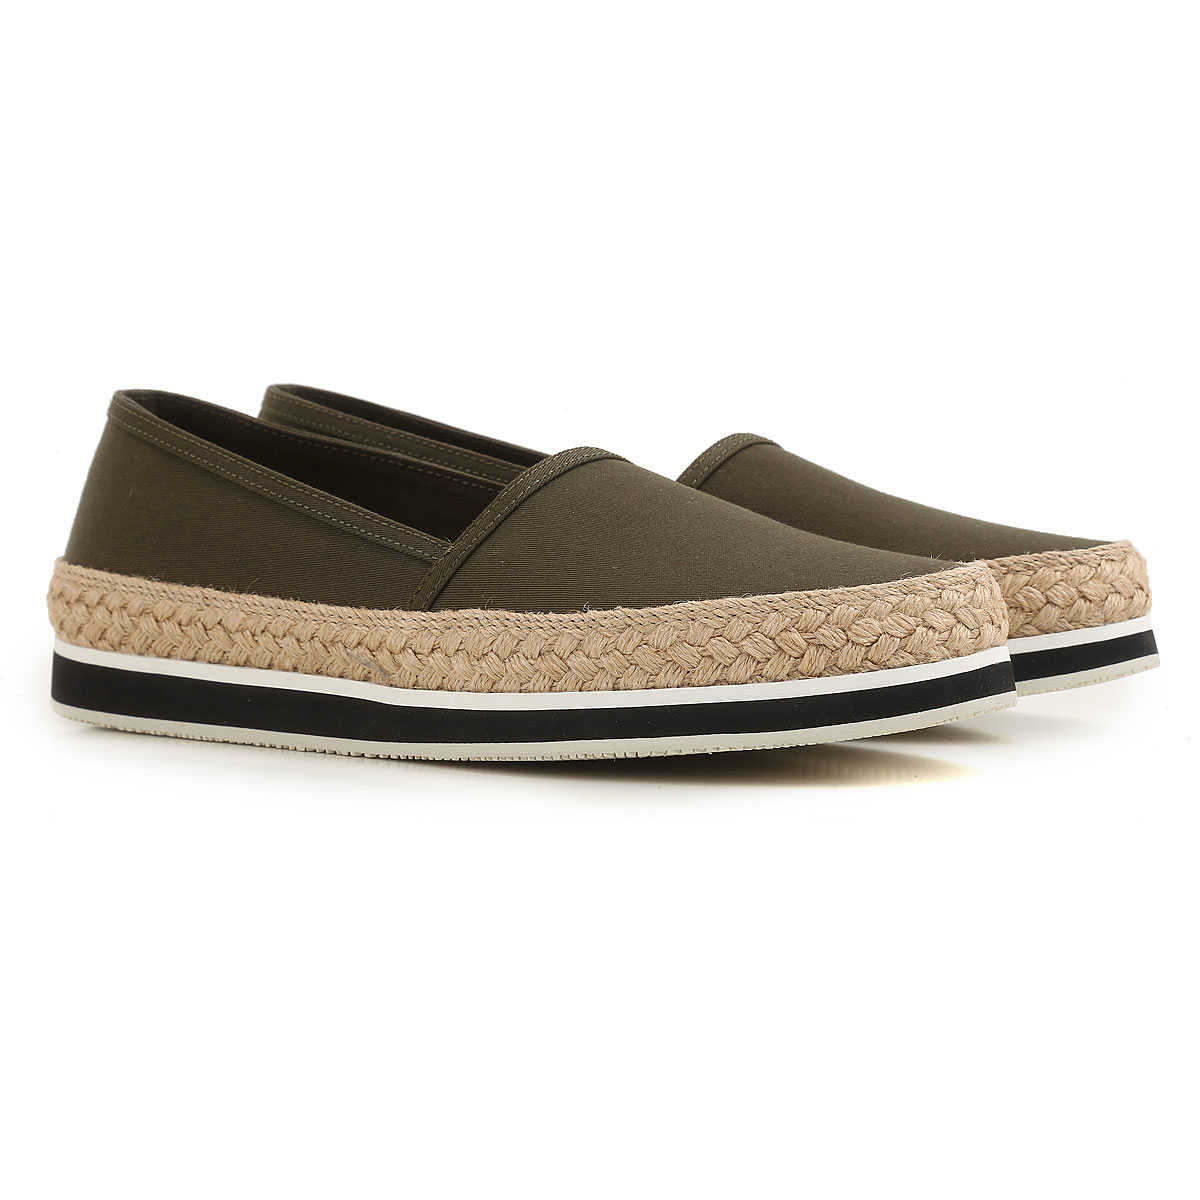 Prada Slip on Sneakers for Women On Sale in Outlet Military Green - GOOFASH